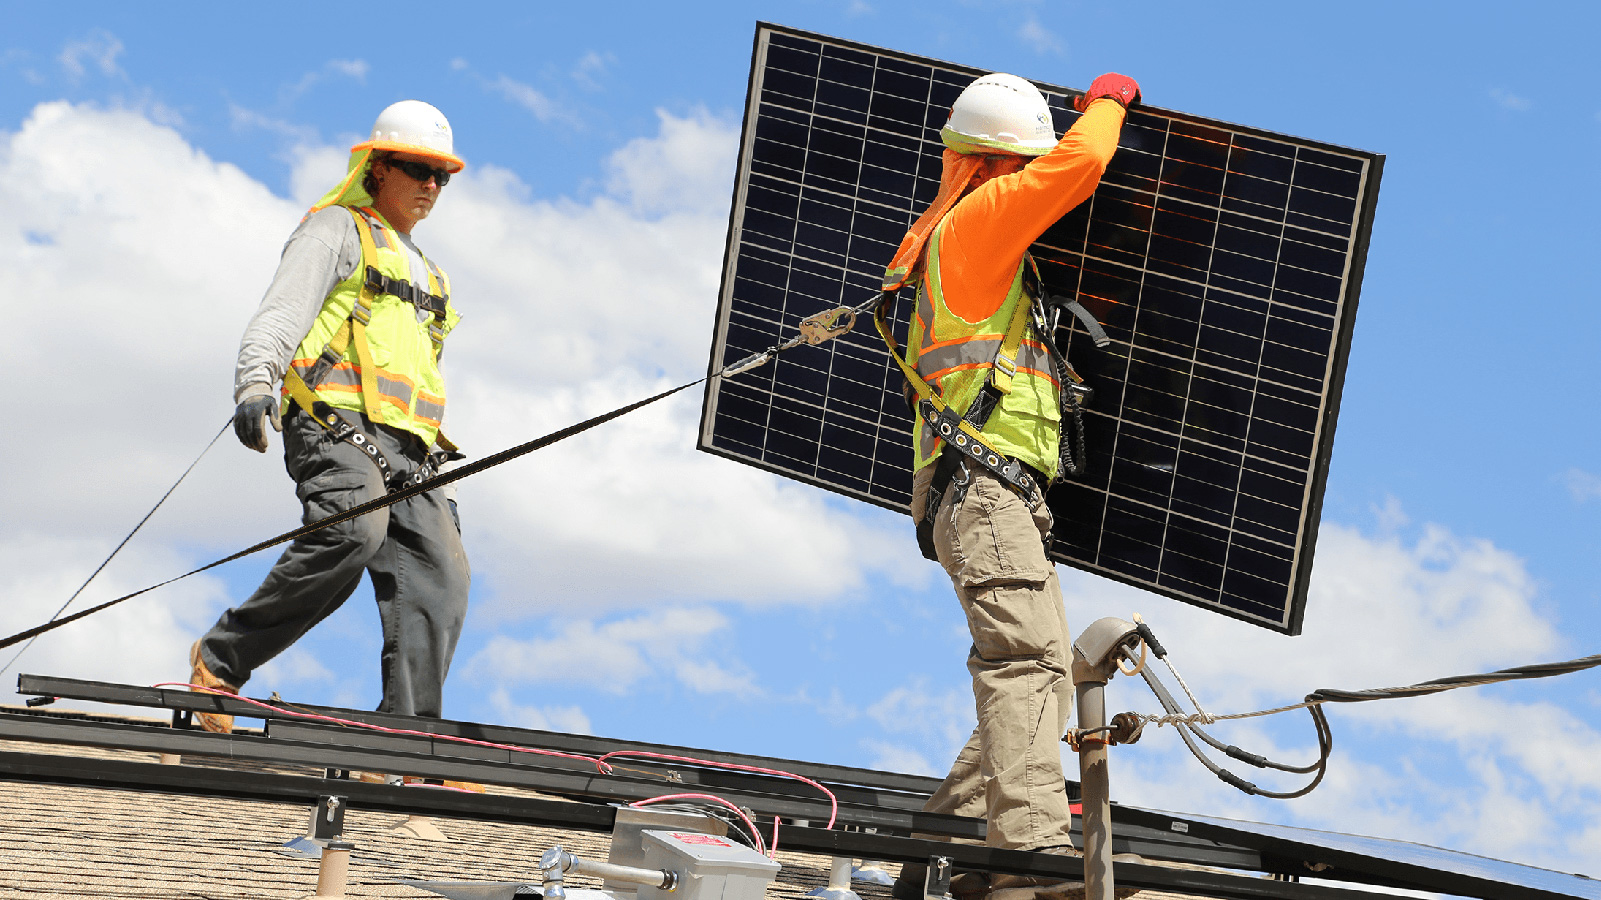 Two people installing rooftop solar panels.